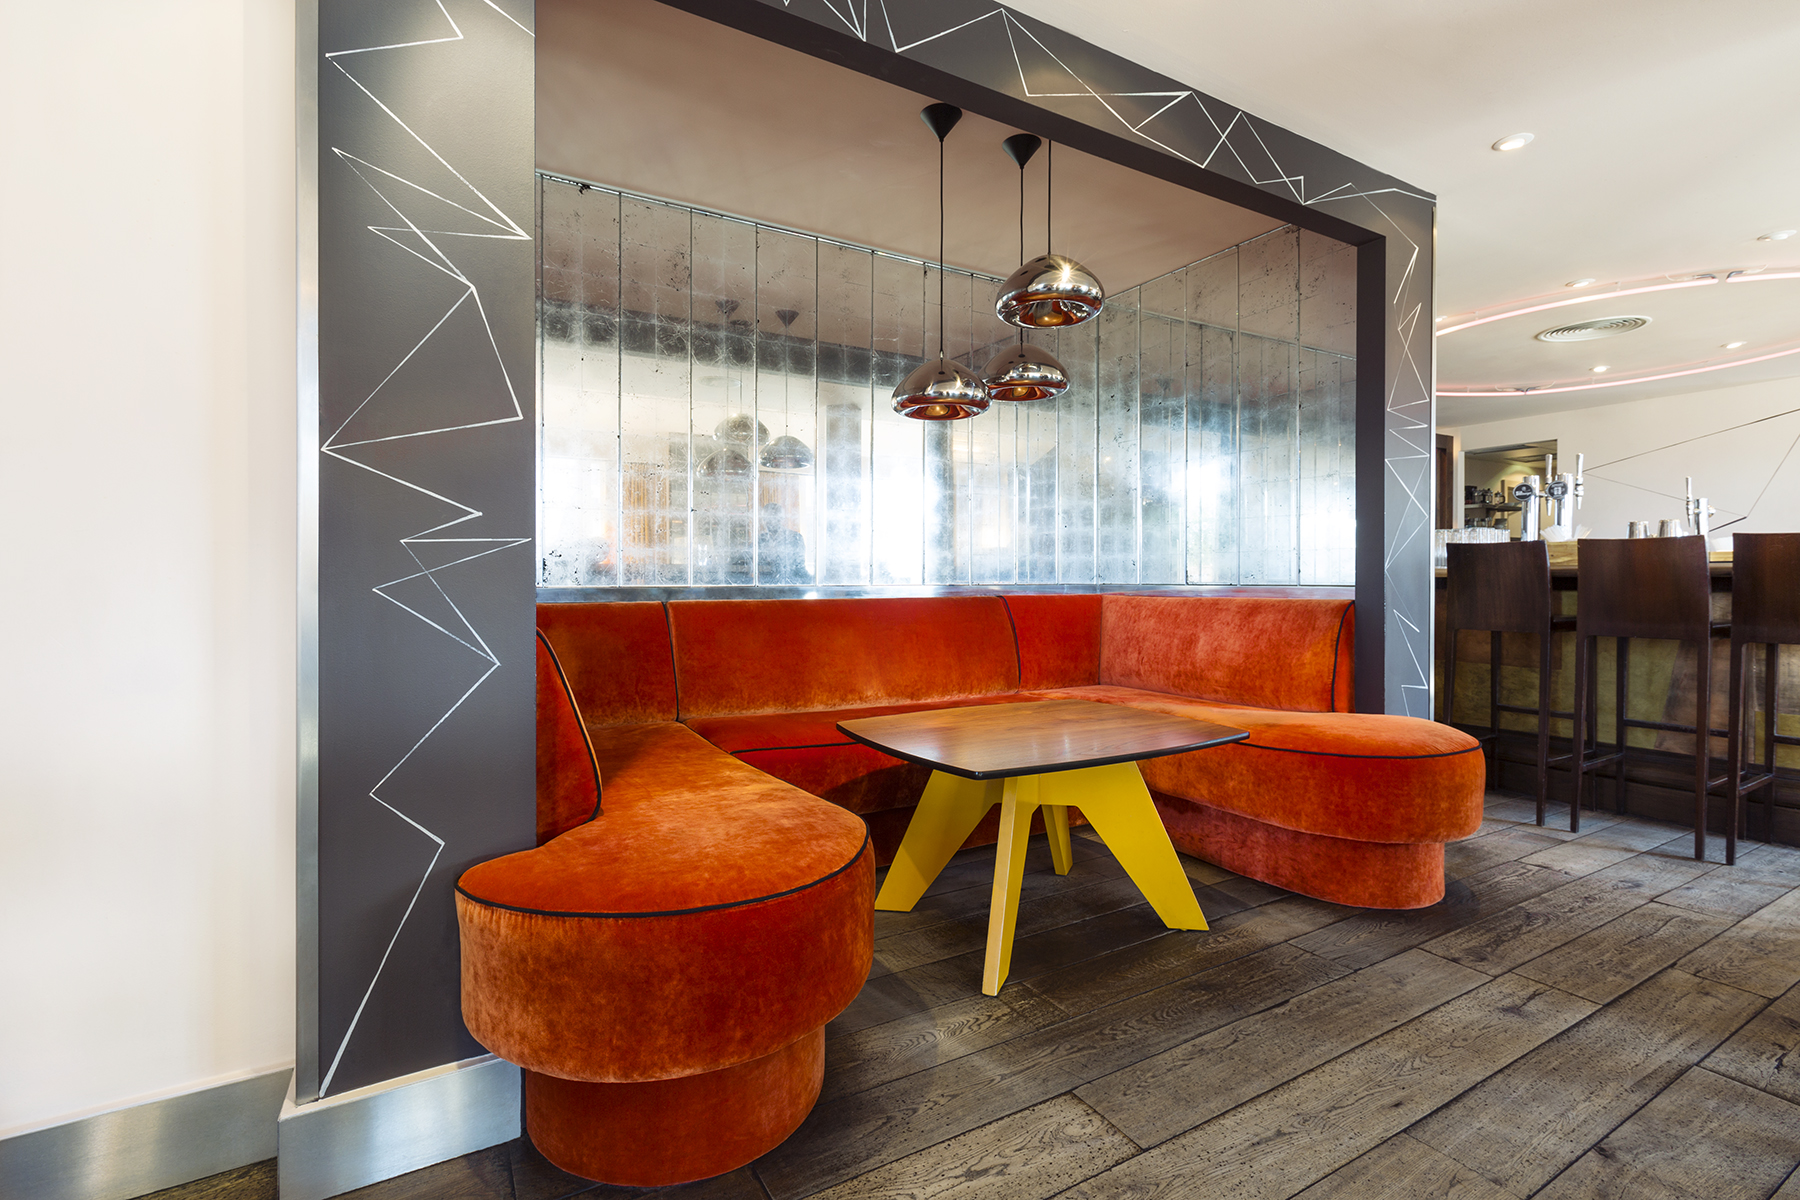 Banquette-seating-reupholstery-1